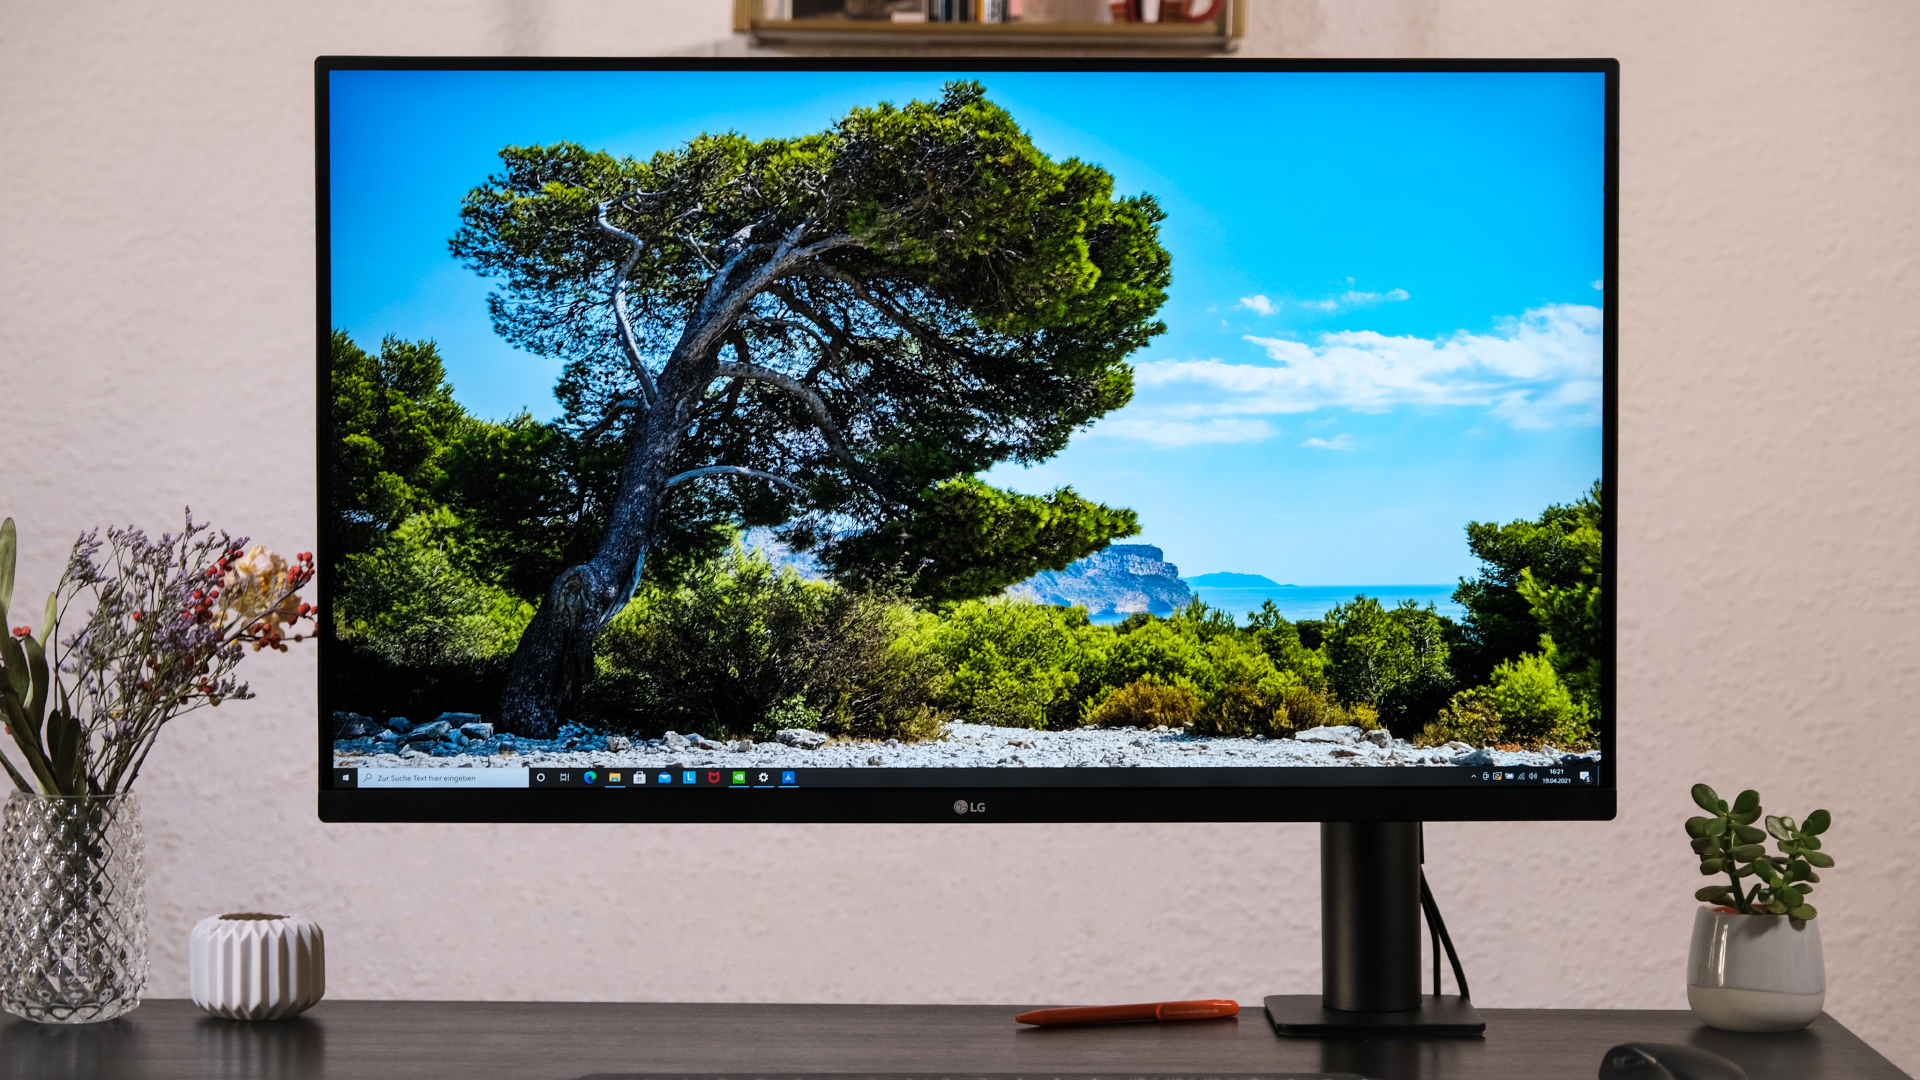 LG 32UN880-B Ergo Ultrafine Monitor Test Review Frontal 2